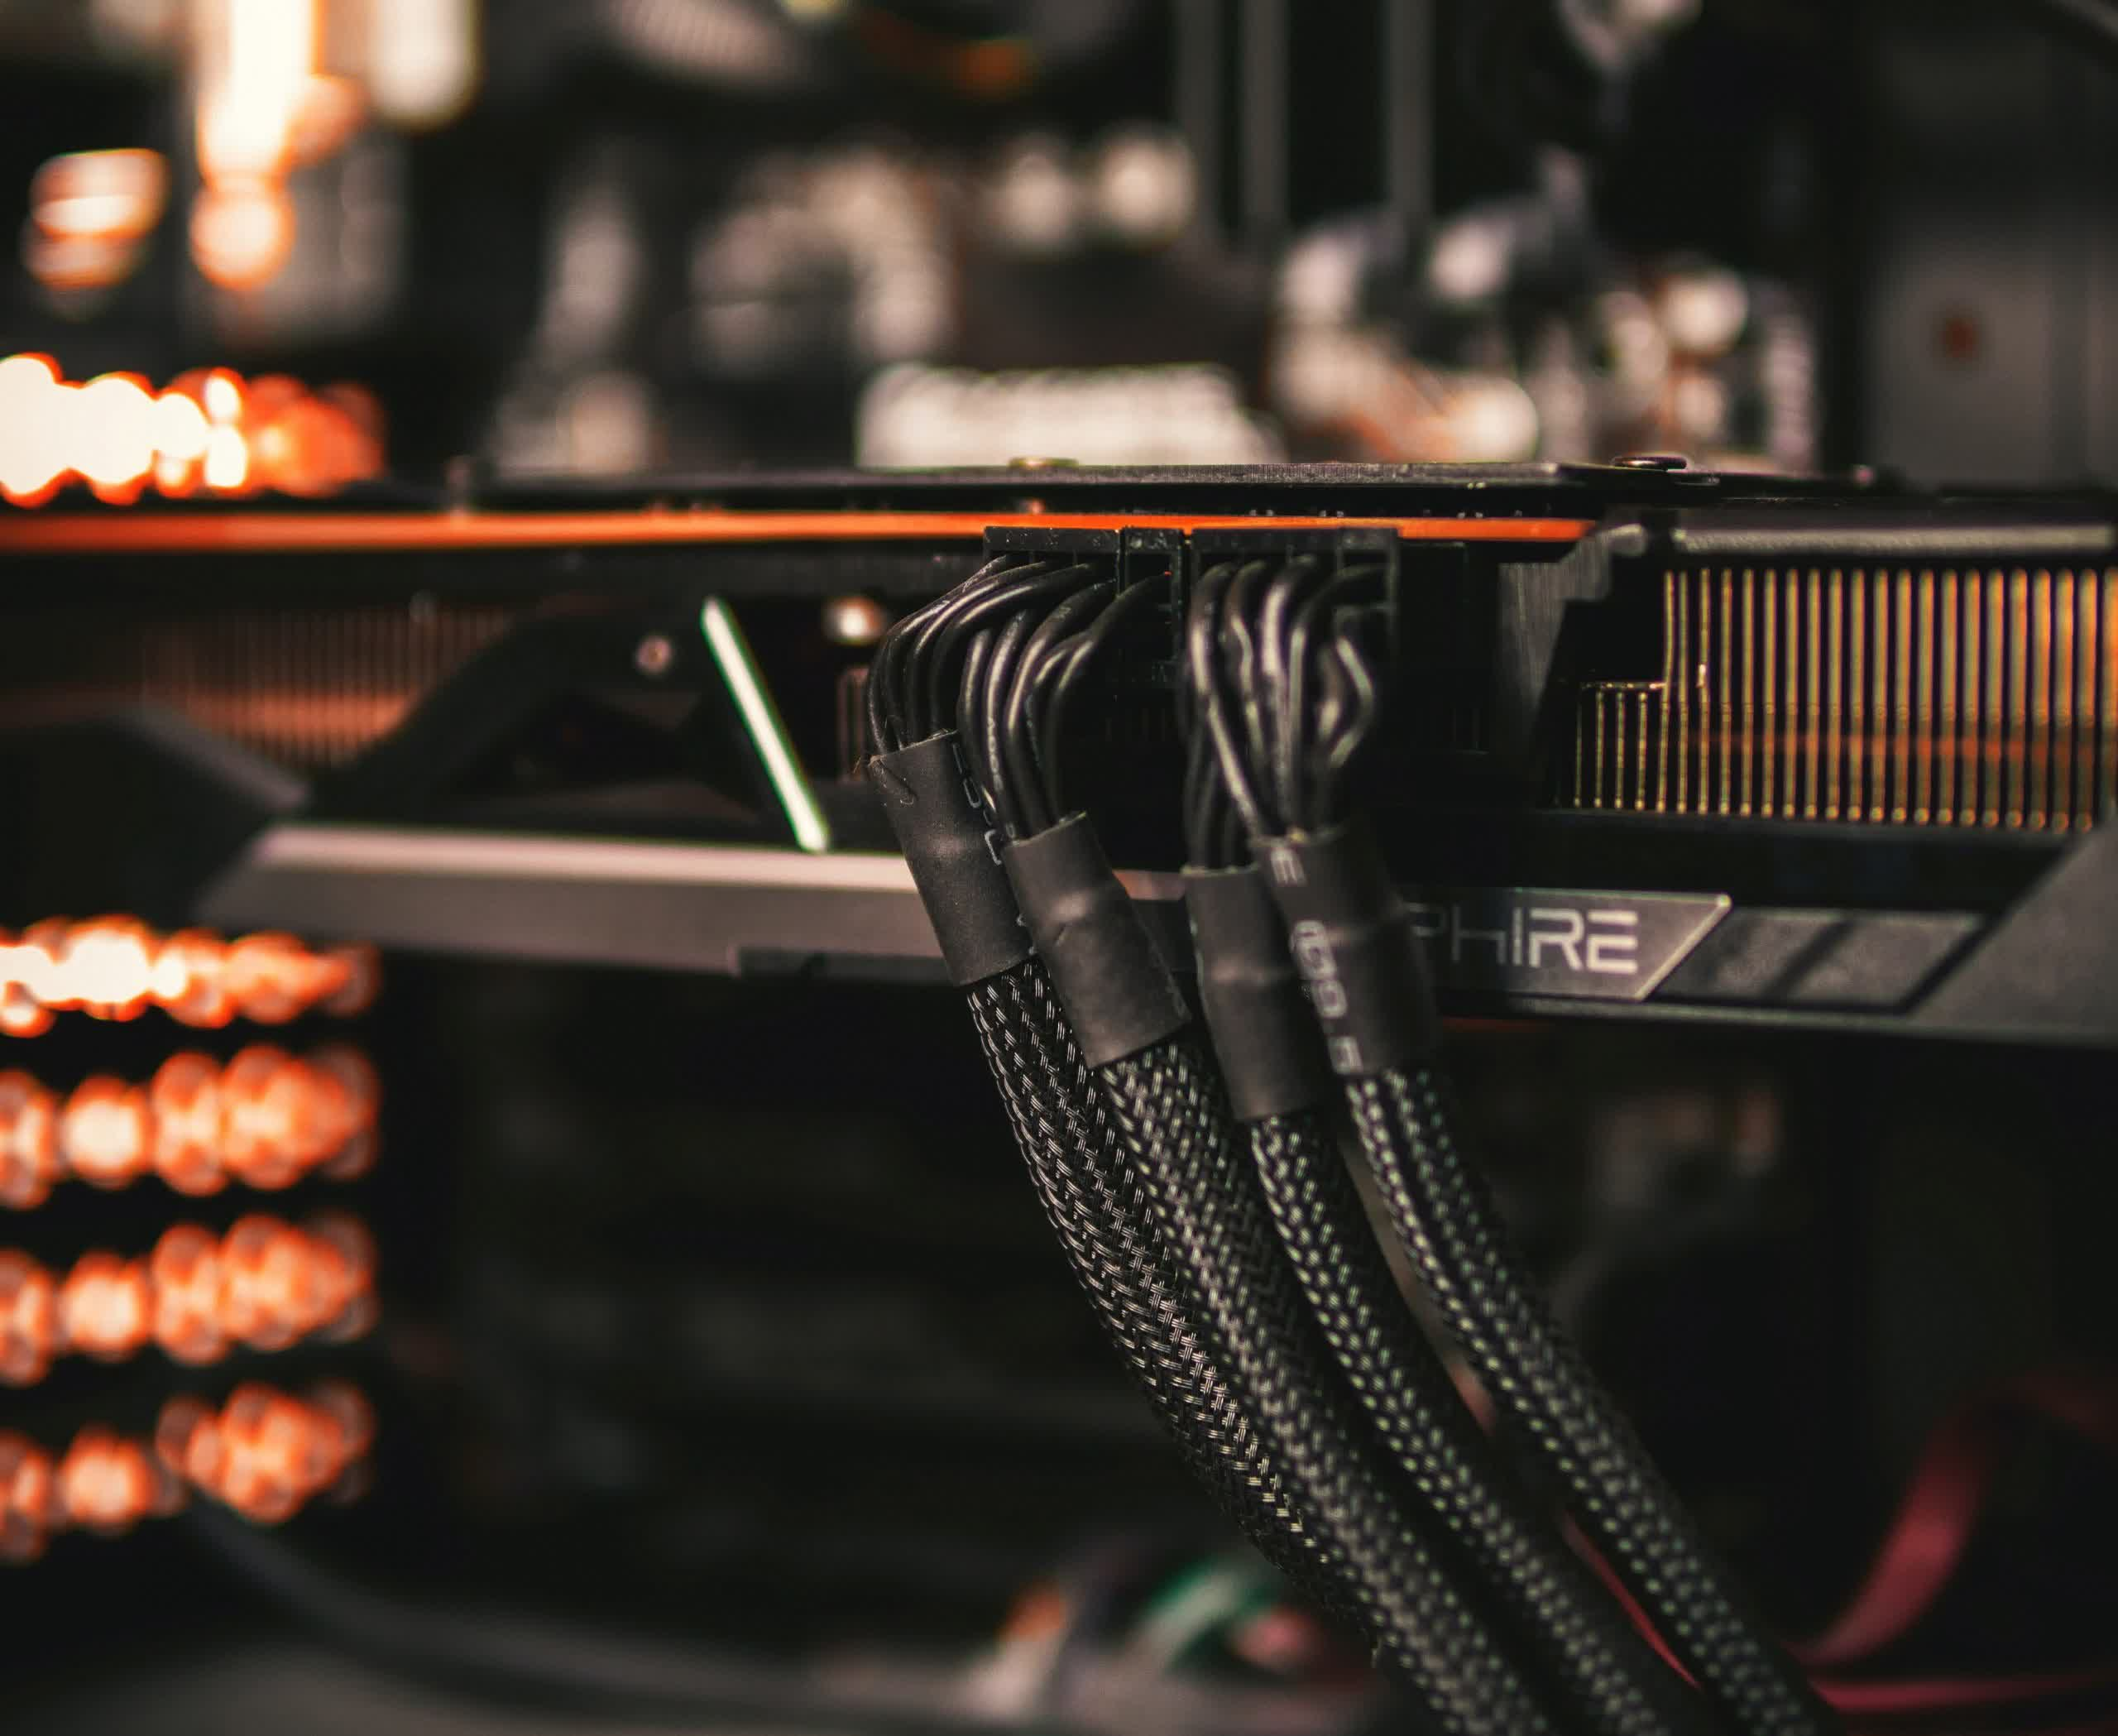 Next-gen power connector for GPUs can handle up to 600W